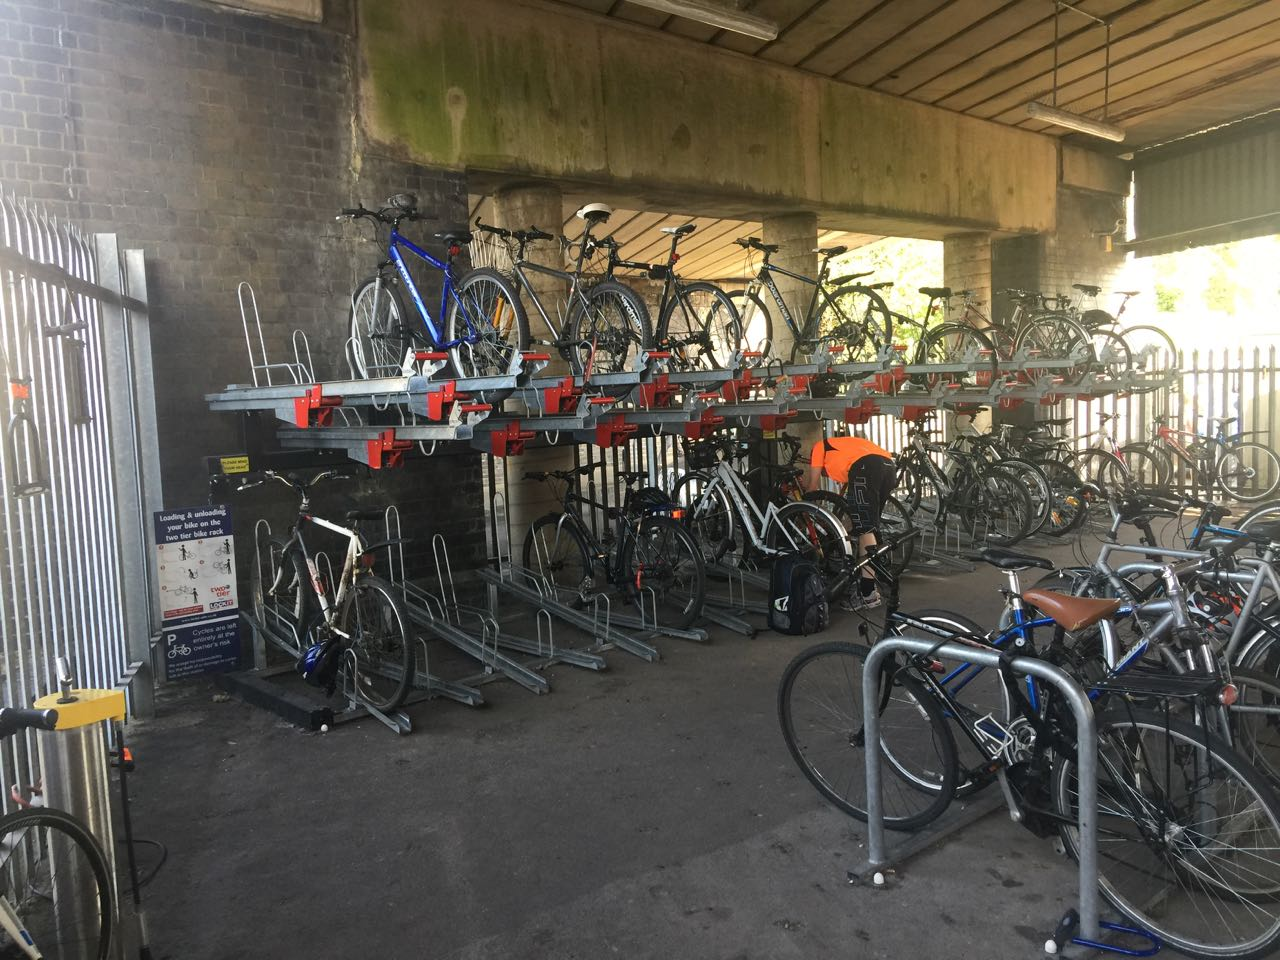 Bicycle Rack at Station